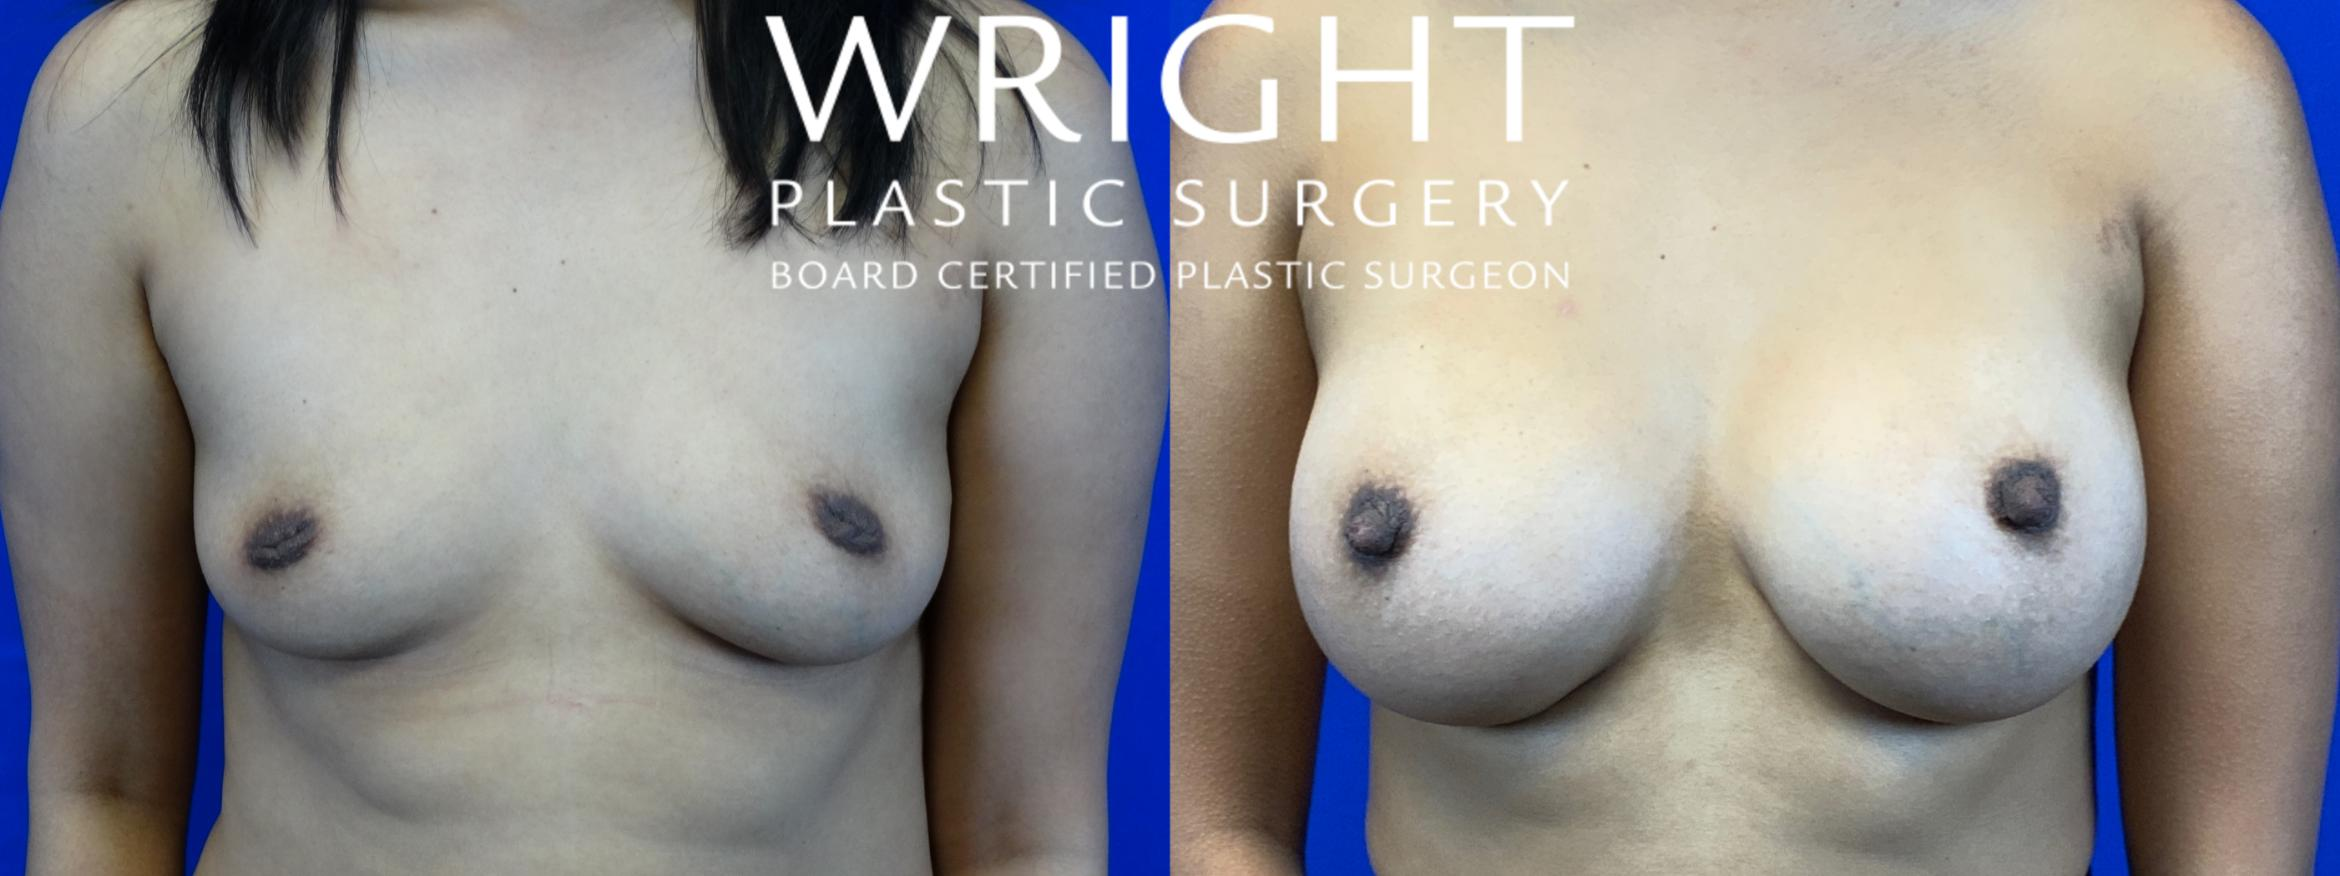 Breast Augmentation Case 55 Before & After Front | Little Rock, Arkansas | Dr. Wright Plastic Surgery